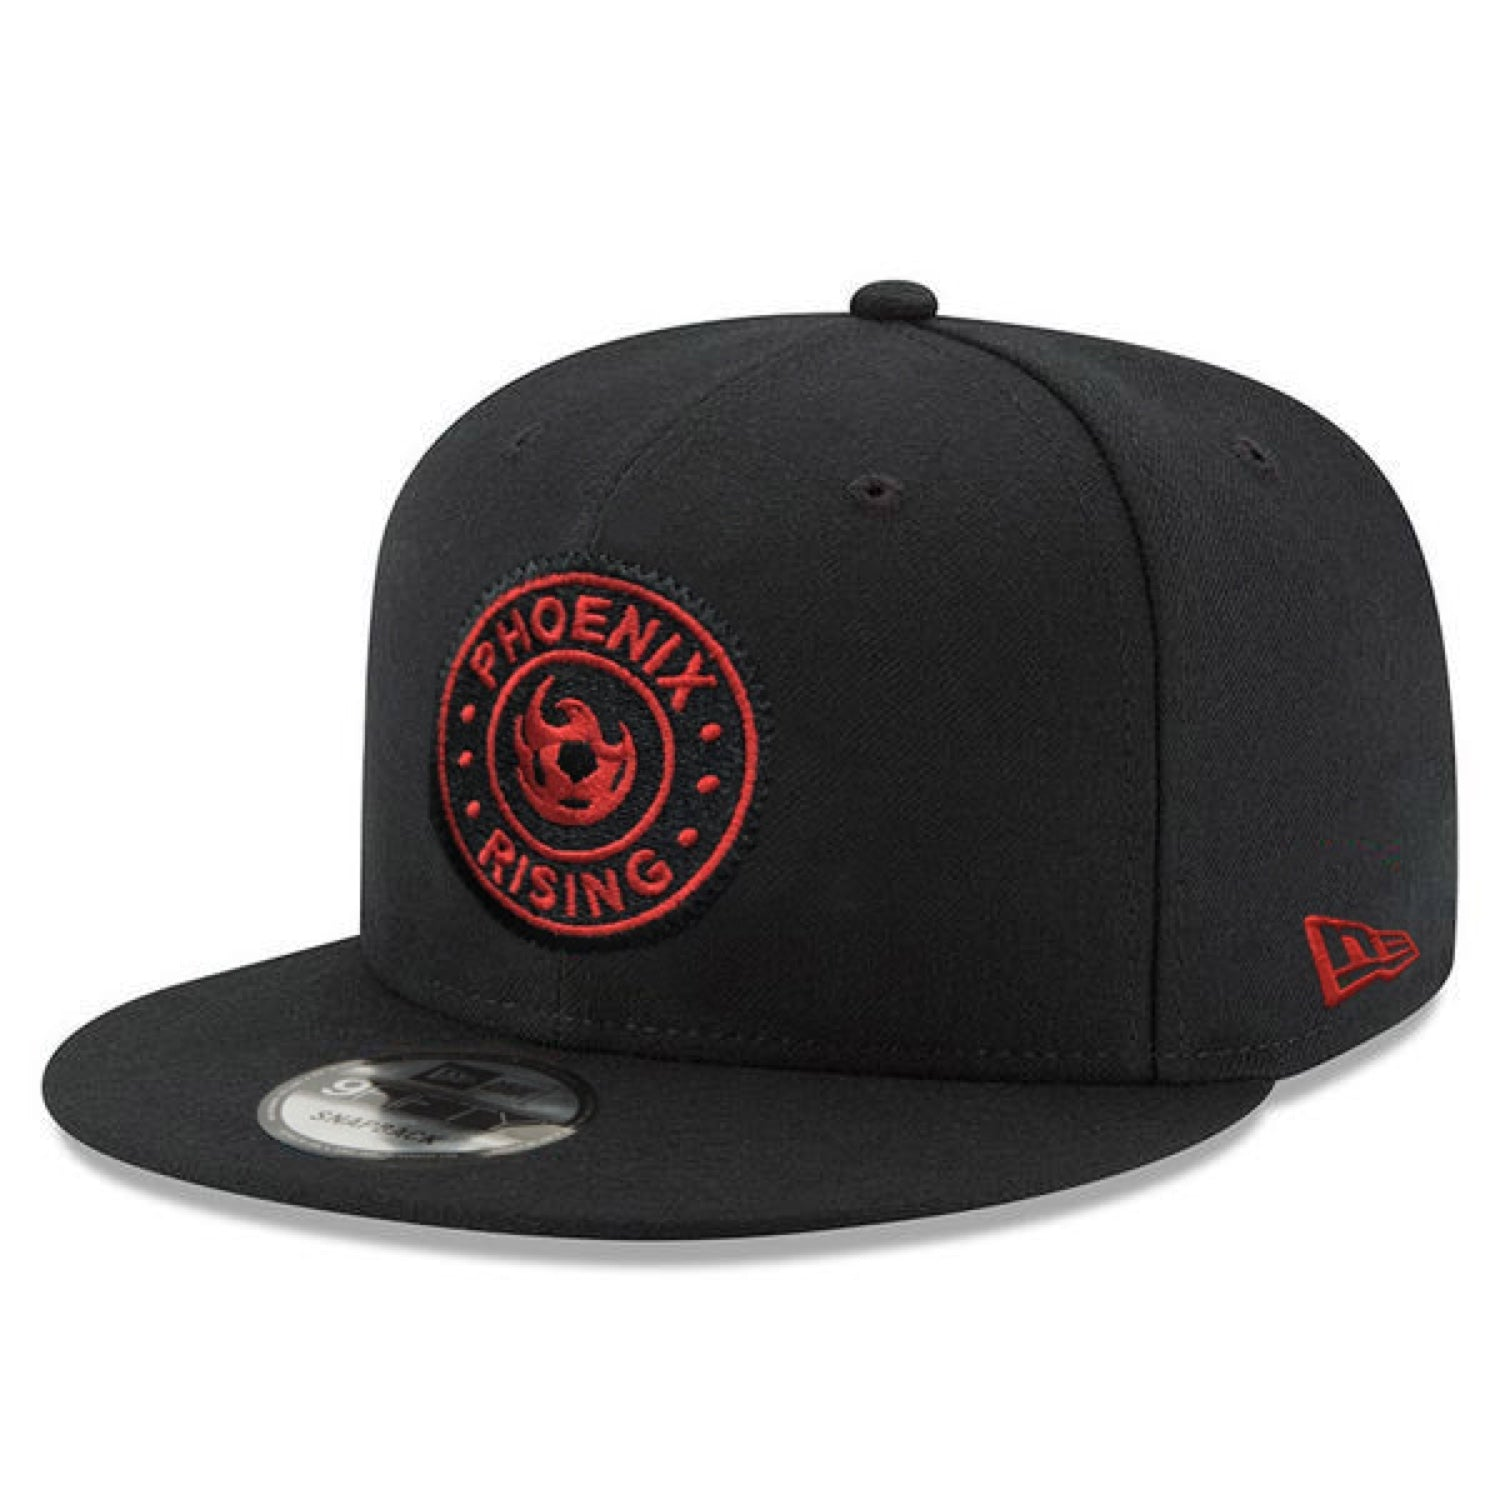 reputable site 0bdfa ce4f0 ... snapback hat fdcb3 c4a0f  coupon code for phoenix rising exclusive  circle patch new era 9fifty black 59ab2 c5a1d